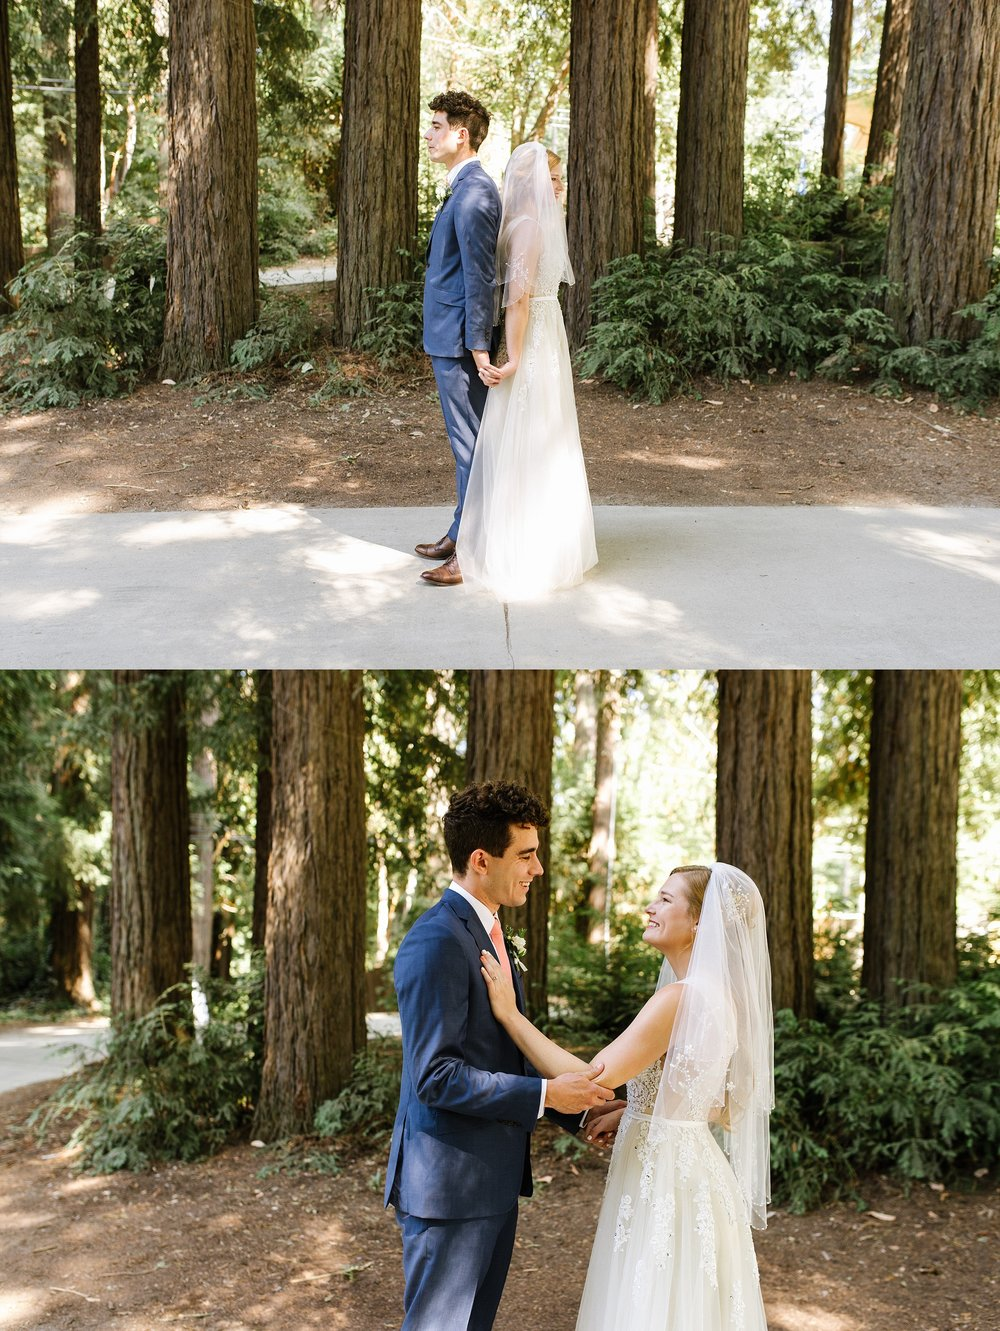 Amphitheatre-of-the-Redwoods-wedding-erikariley_chelsea-dier-photography_0006.jpg